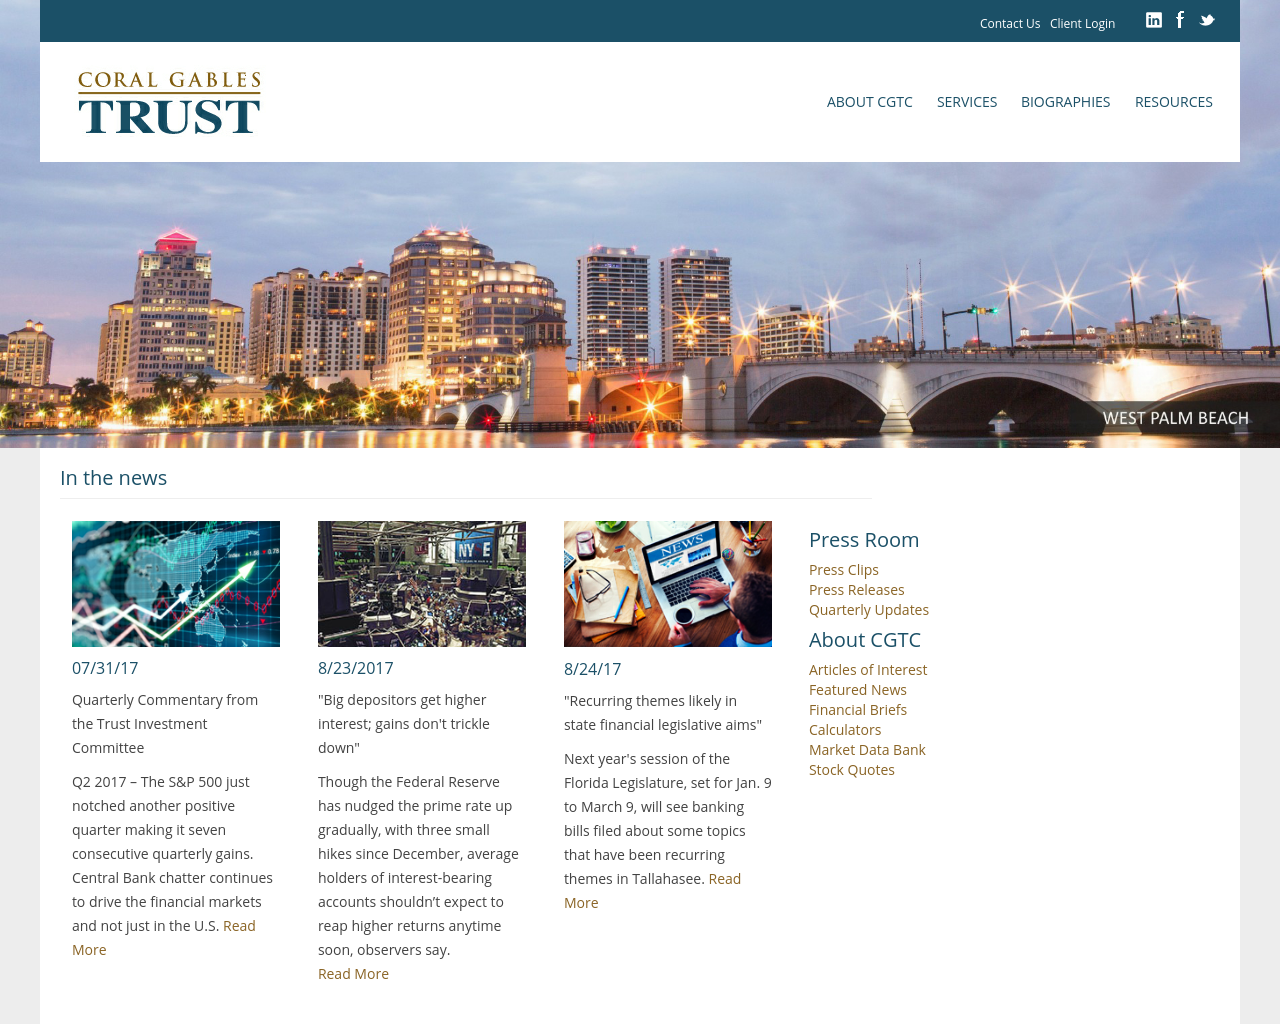 Coral-Gables-Trust-Advertising-Reviews-Pricing